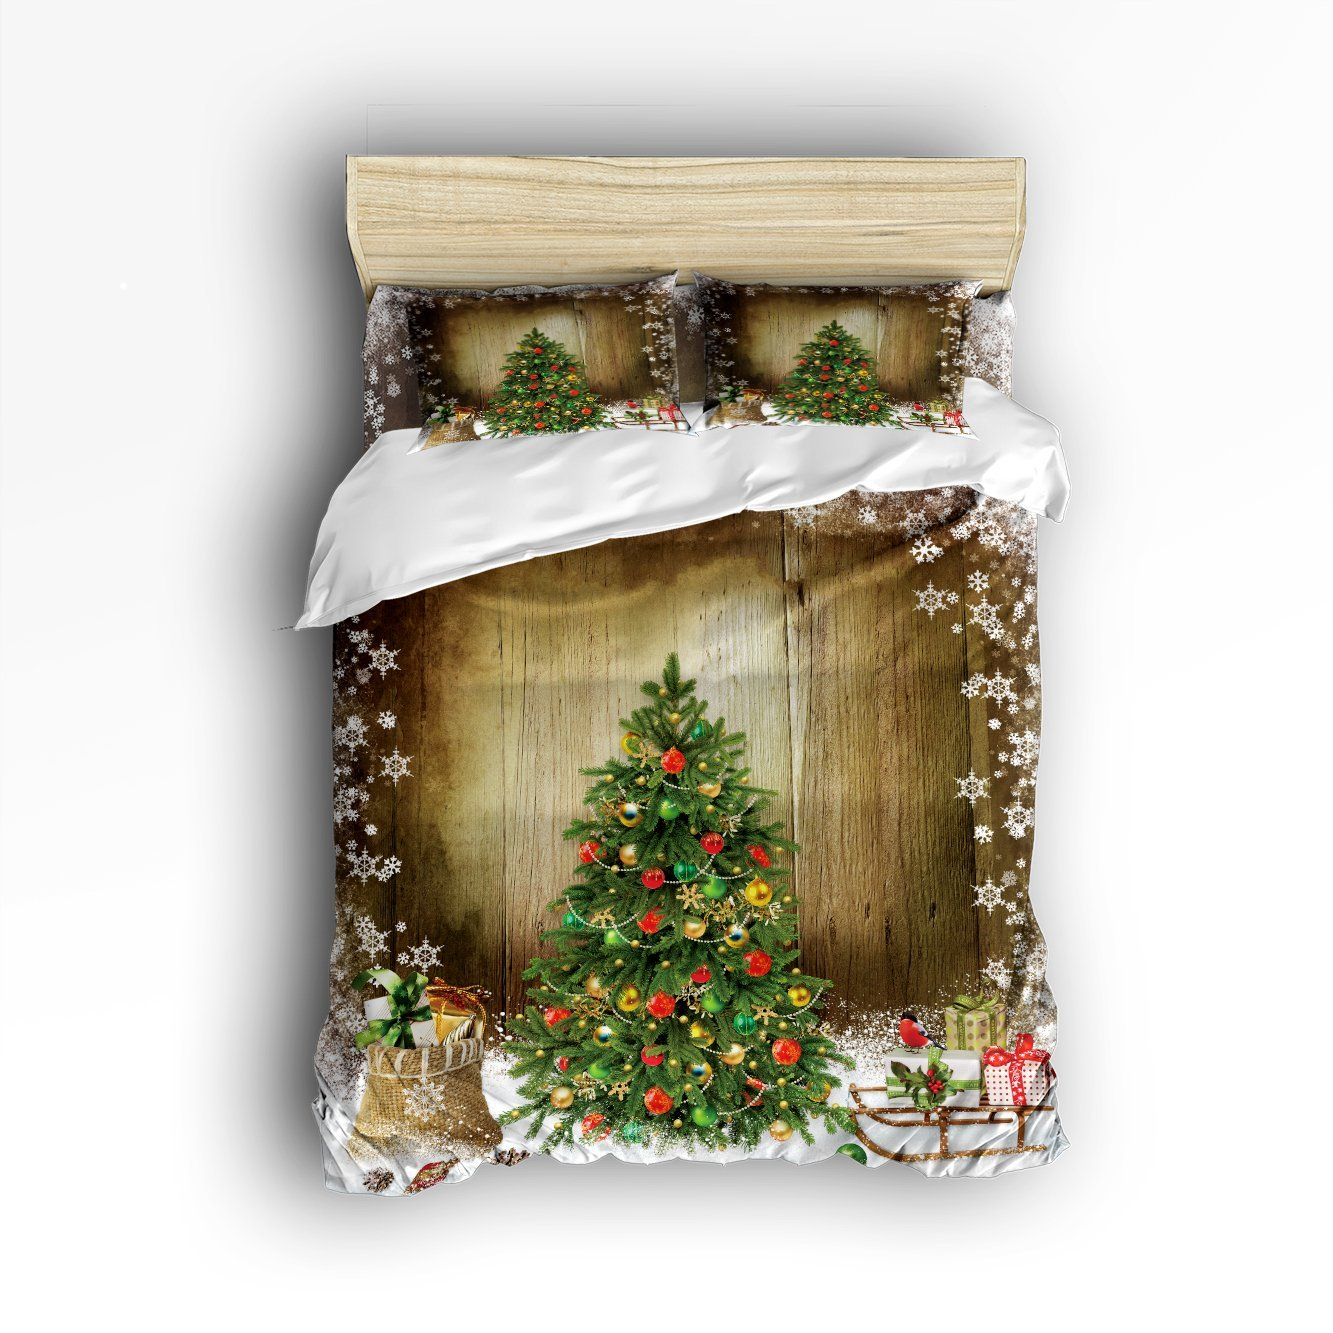 Christmas Tree Facebook Cover Photo: CHARMHOME Christmas Tree With Holiday Presents 3d